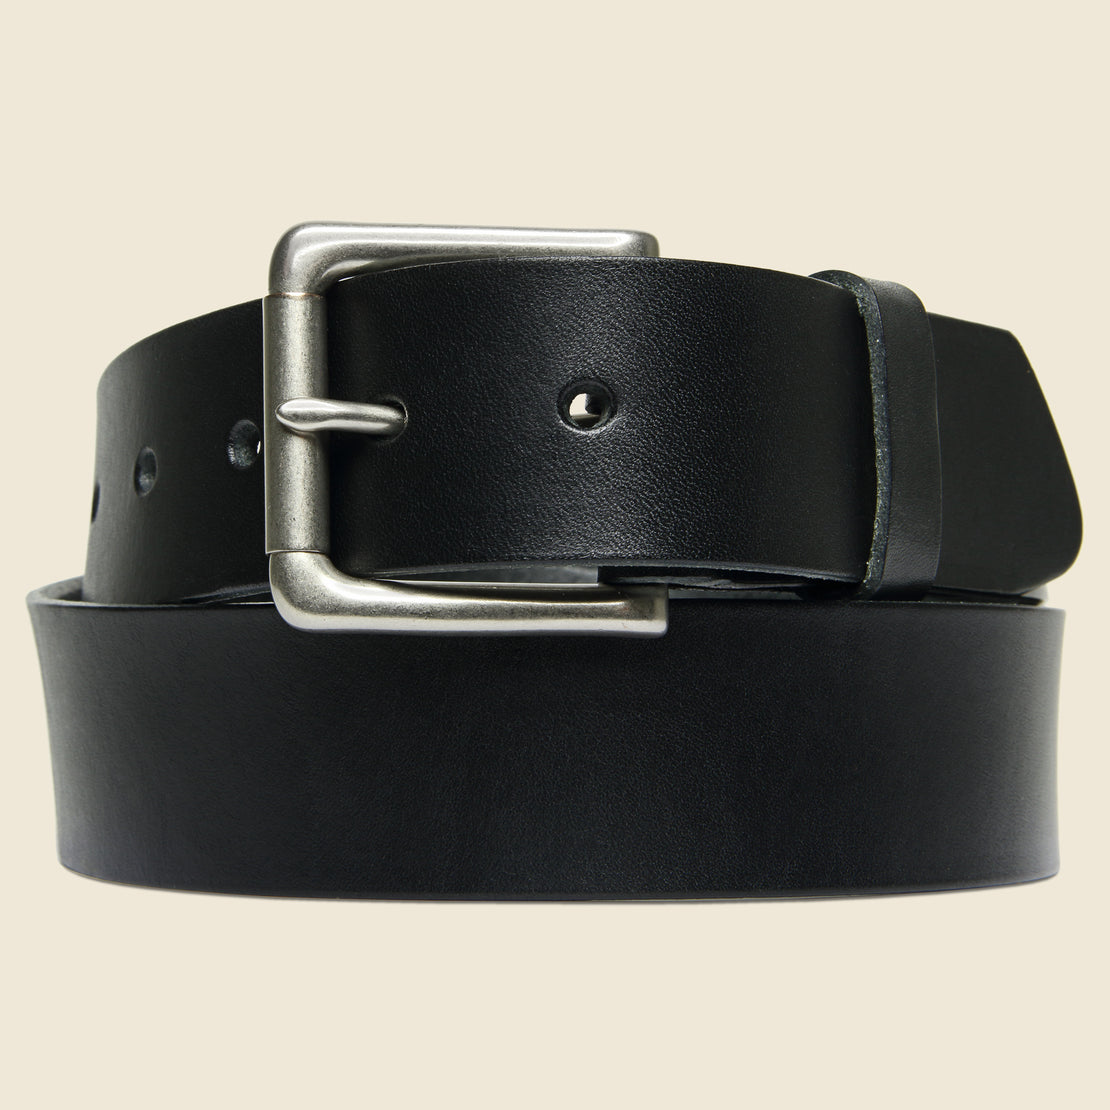 BILLYKIRK Nickel Roller Bar Belt - Black